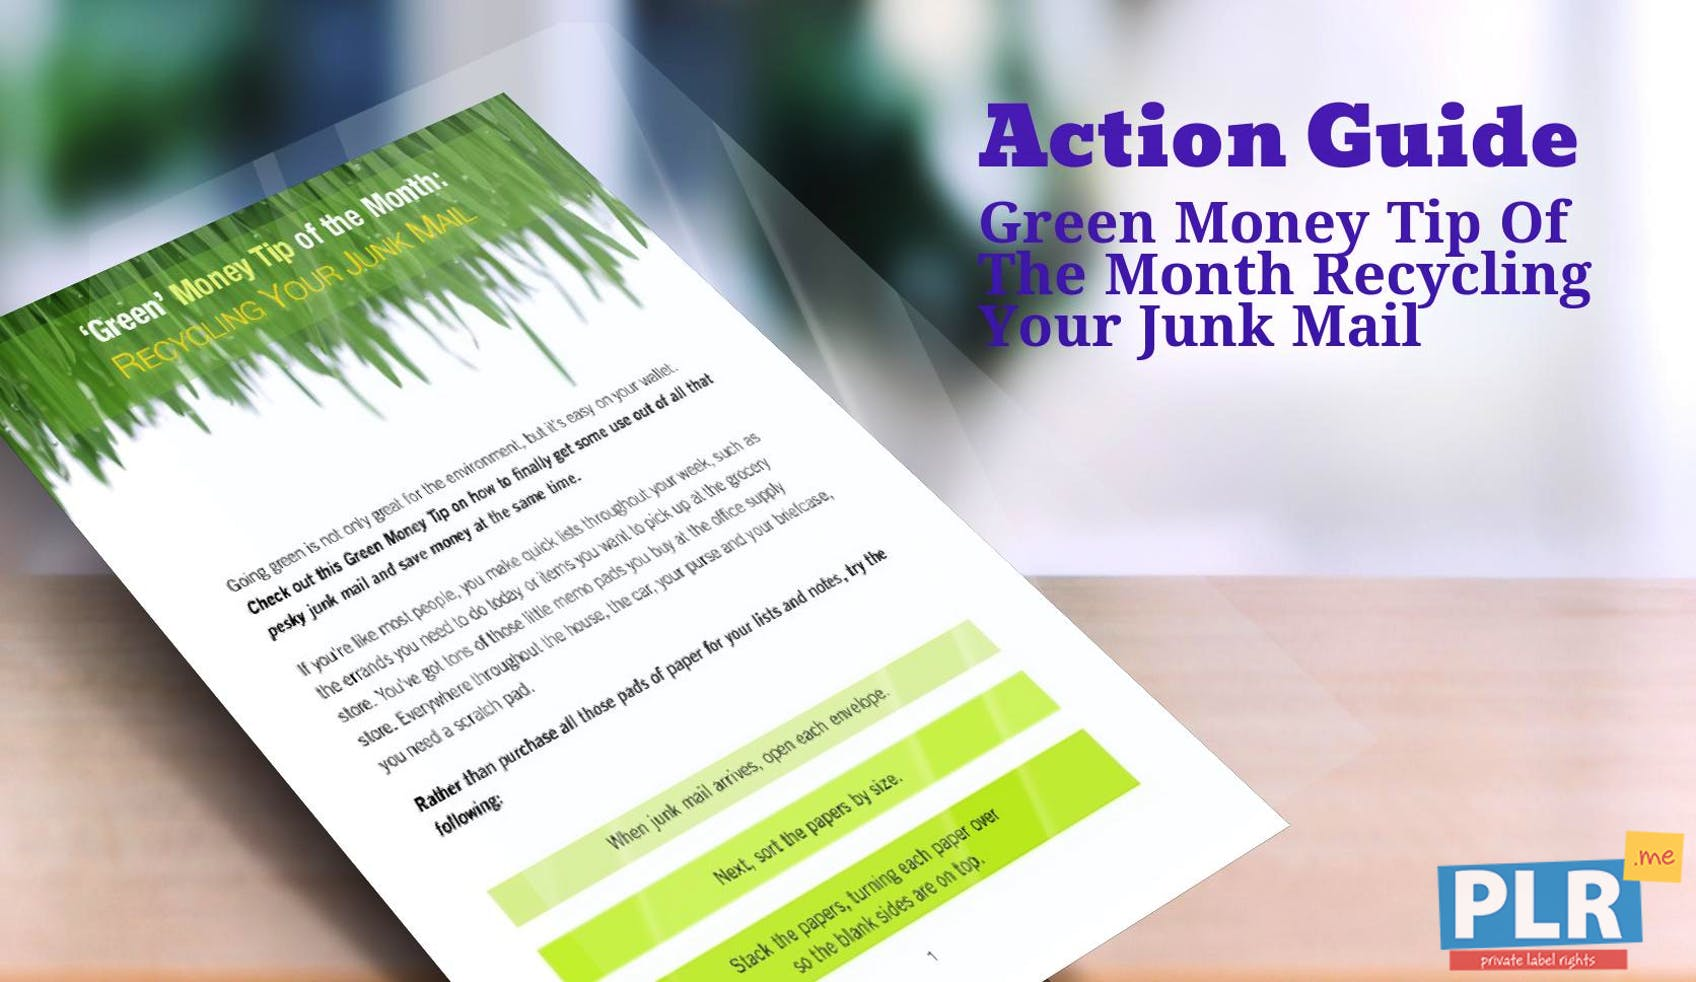 Green Money Tip Of The Month Recycling Your Junk Mail